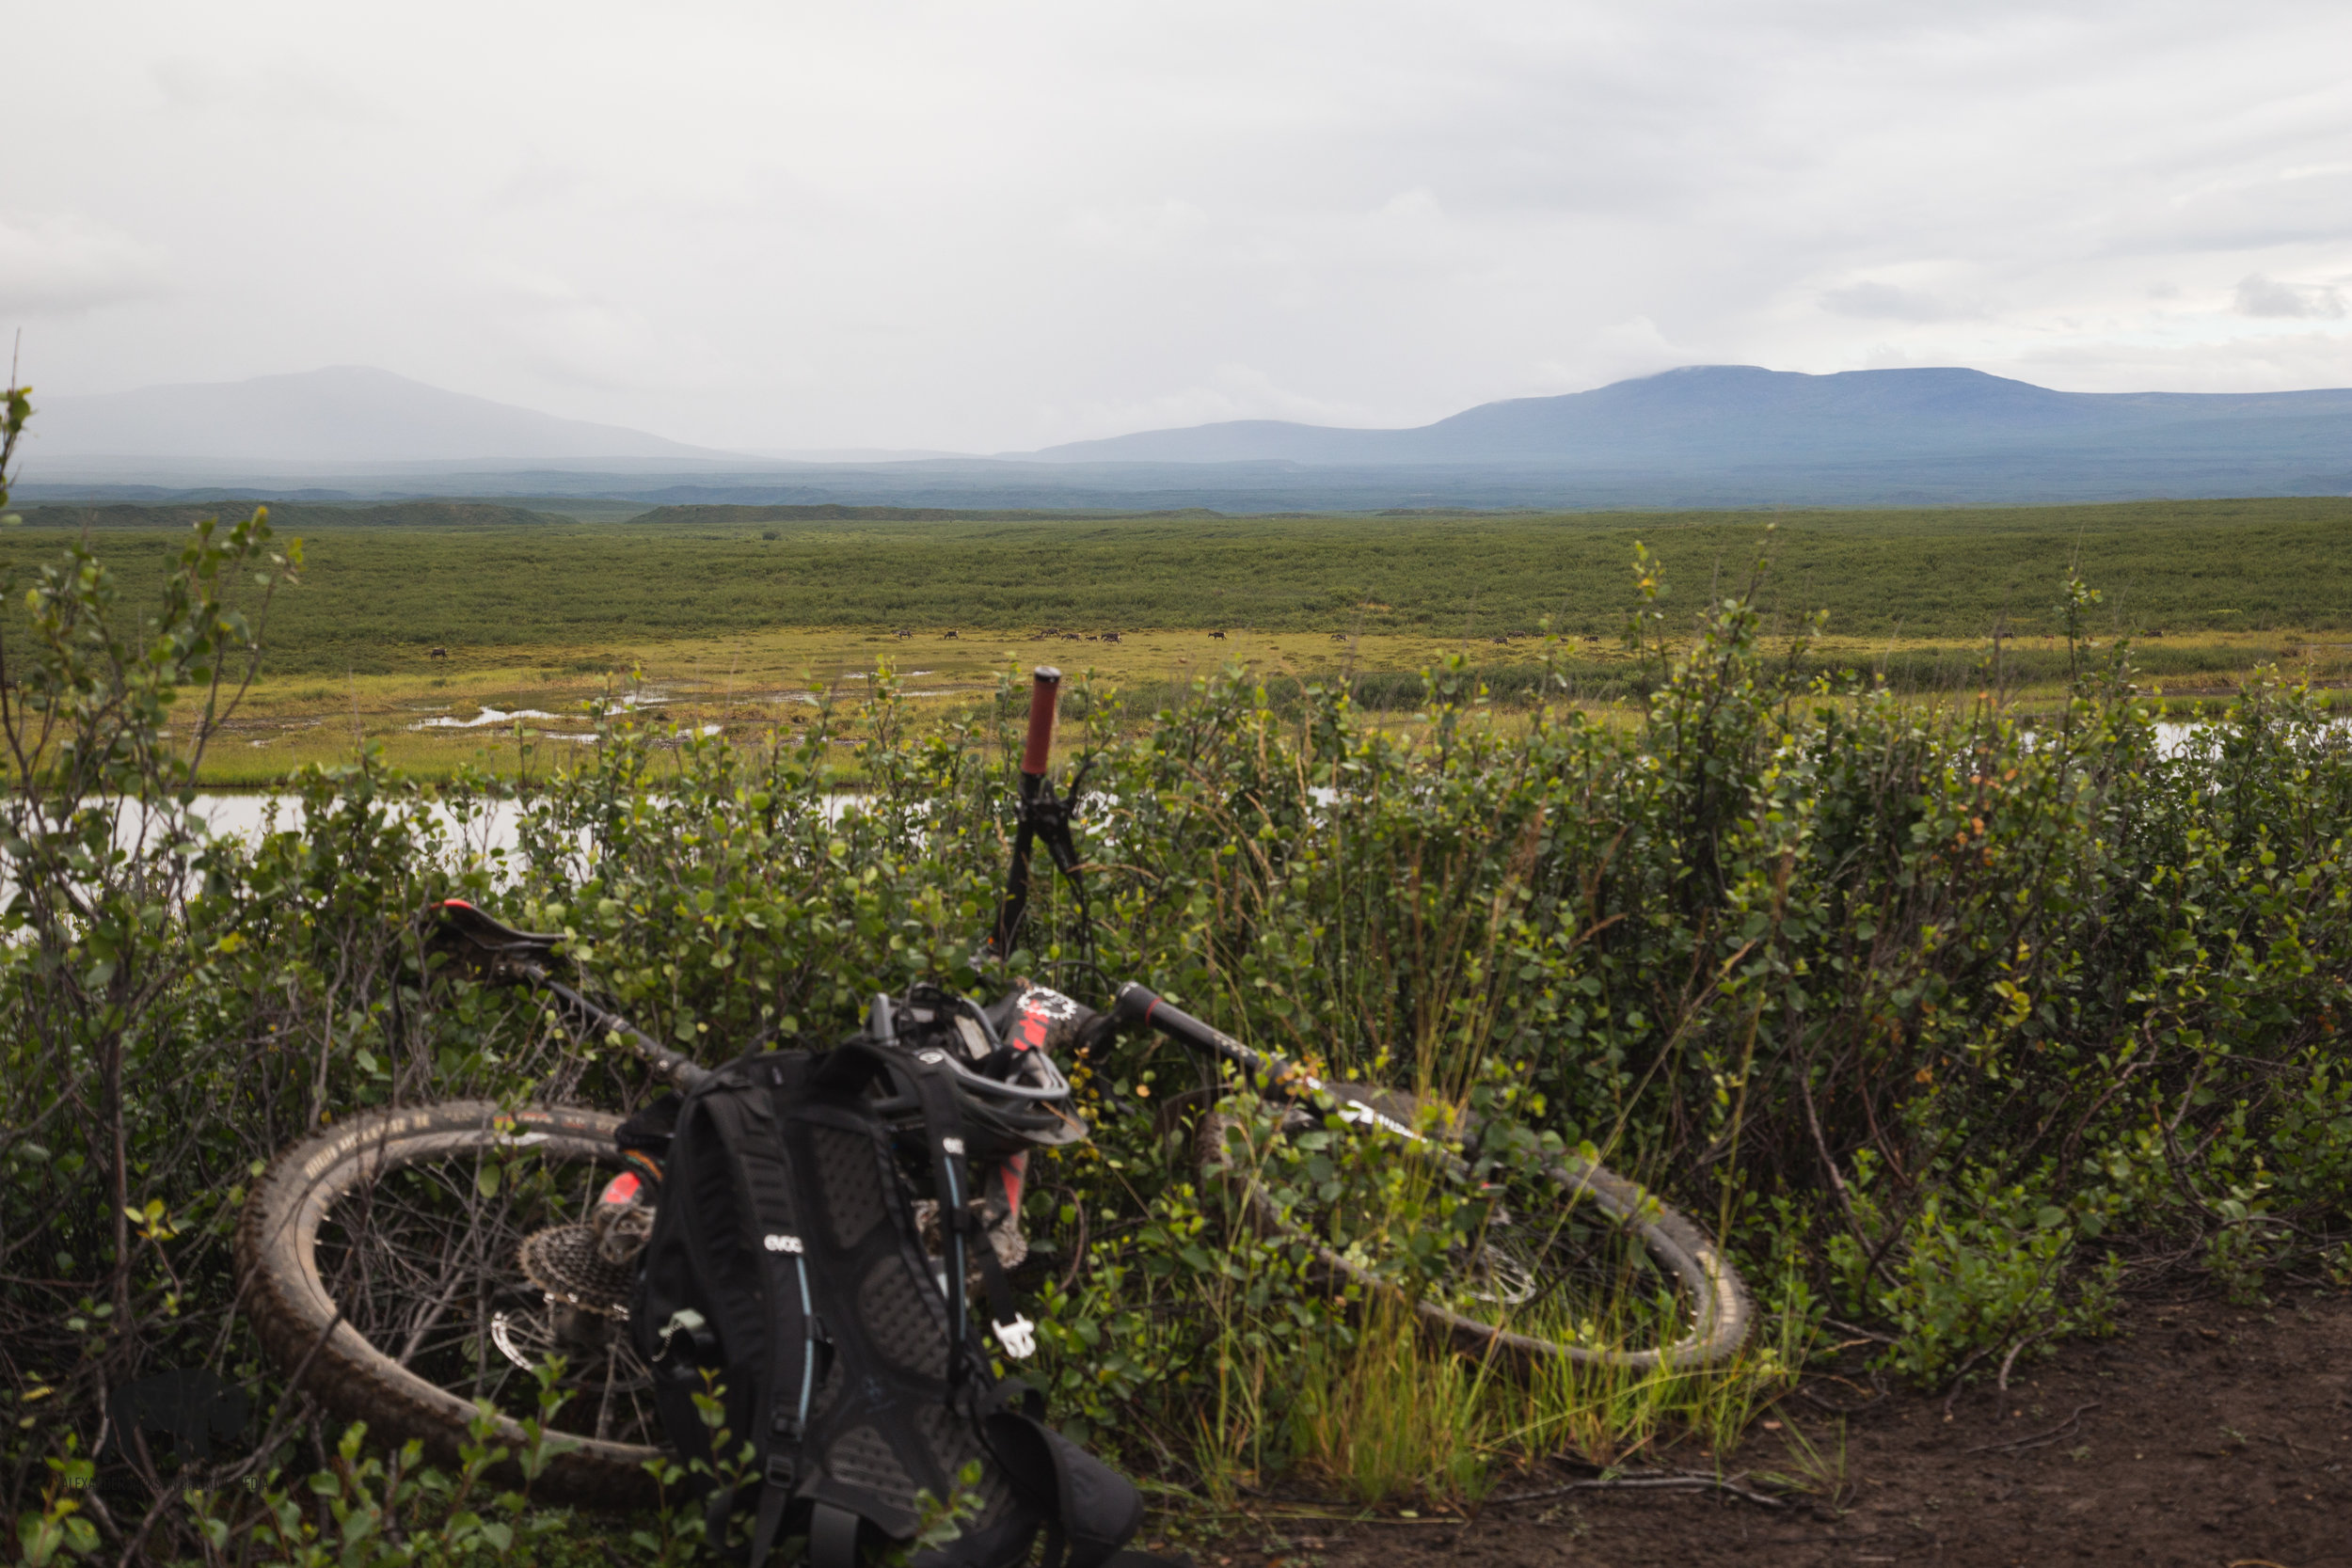 Look over my handle bars and you'll see my caribou friends. So many times have I regretted not purchasing a larger zoom lens before this trip...